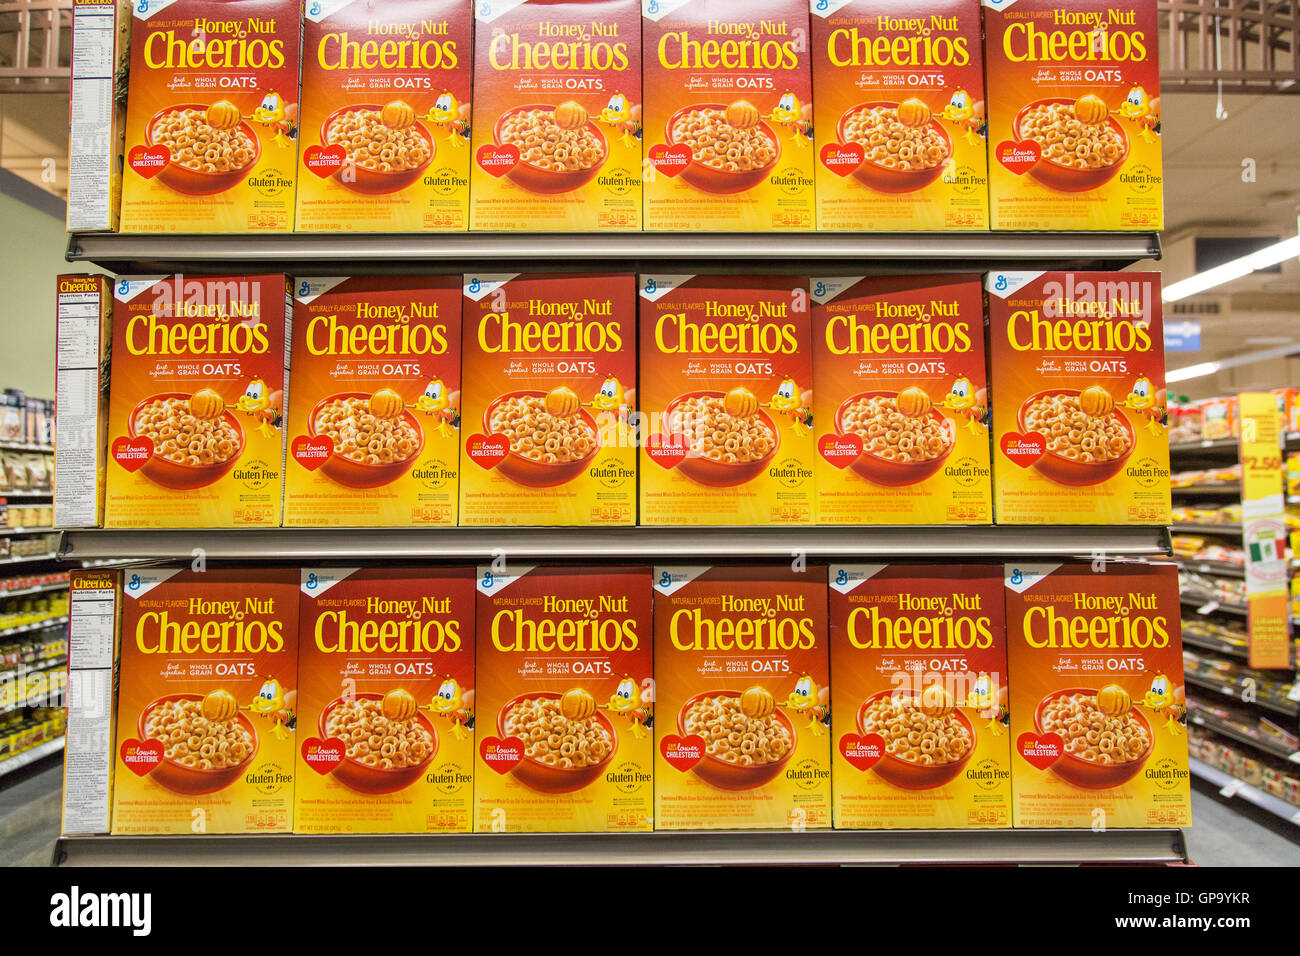 Boxes of General Mills Honey Nut Cheerios cereal on display at on grocery store shelves - Stock Image